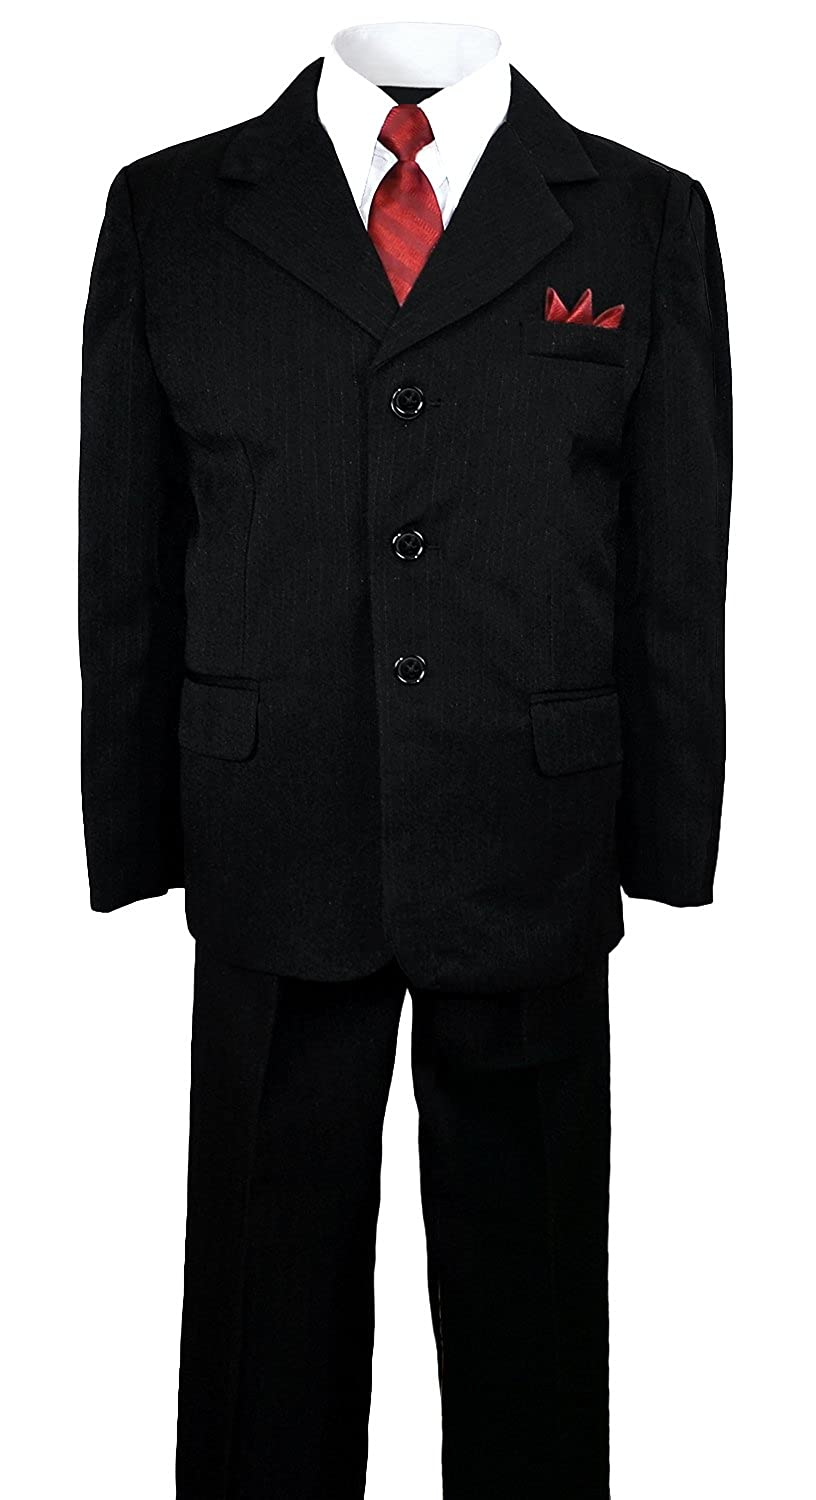 Amazon.com: Boys Pinstripe Suit in Black with Matching Dark Red ...